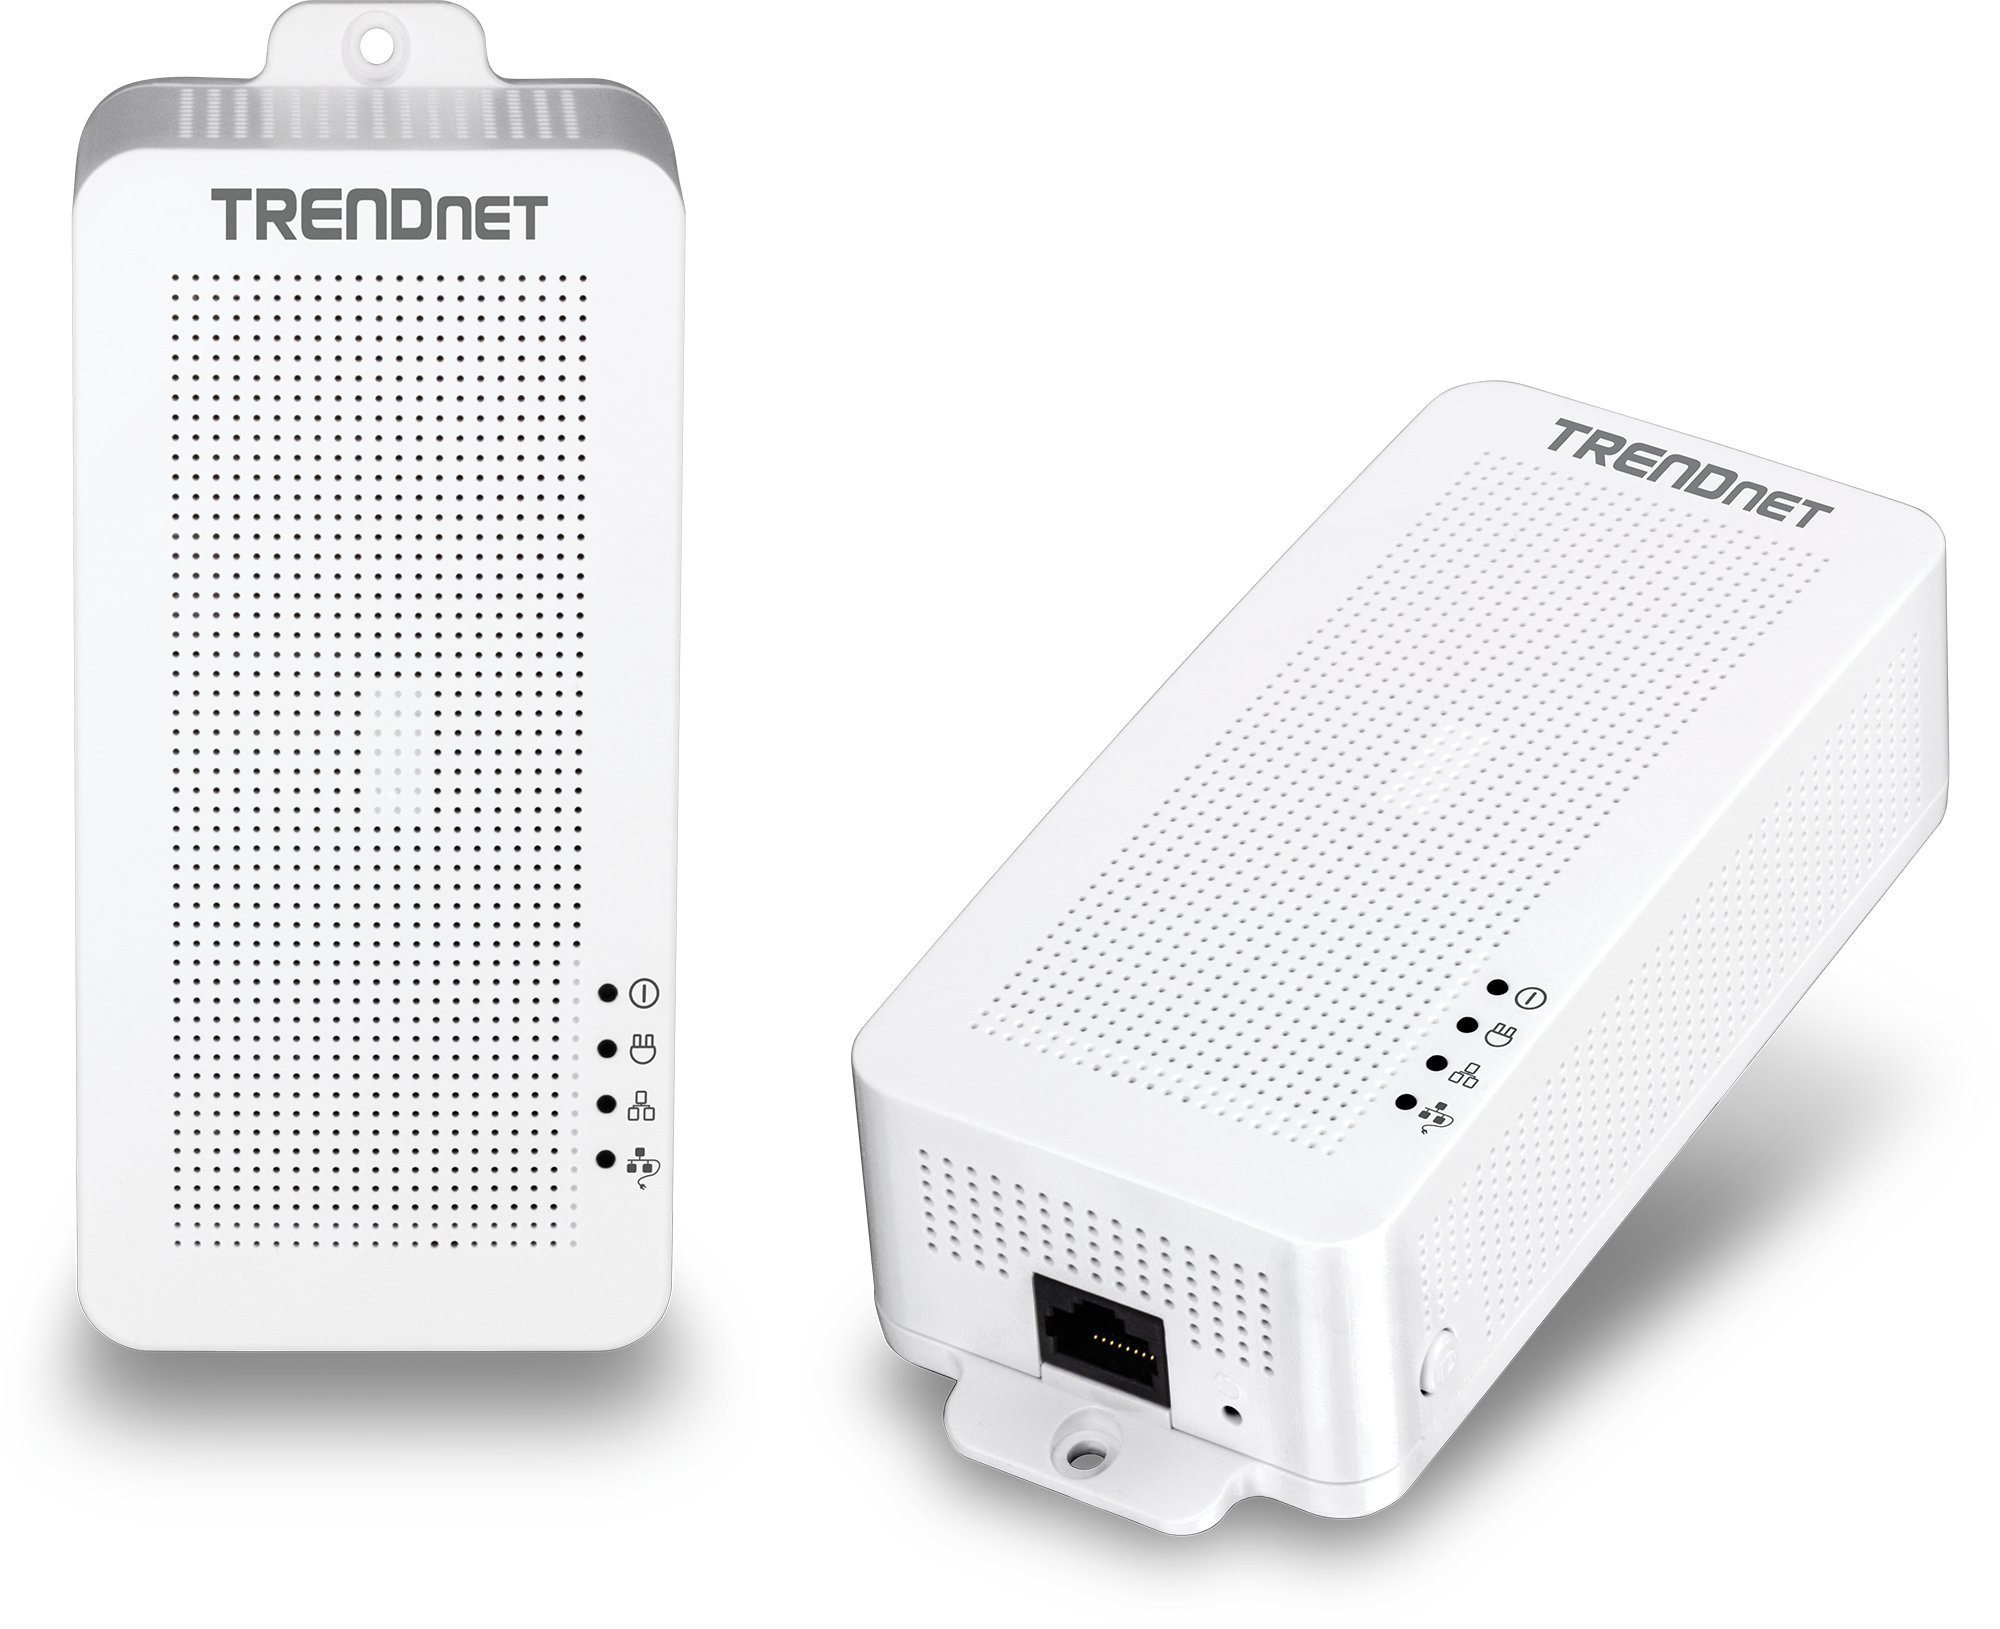 TRENDnet Powerline 200 AV PoE+ Adapter Kit, Output Port Supports PoE, 15.4W, 30W Devices, Includes Two TPL-331EP Adapters, Twin Pack, TPL-331EP2K